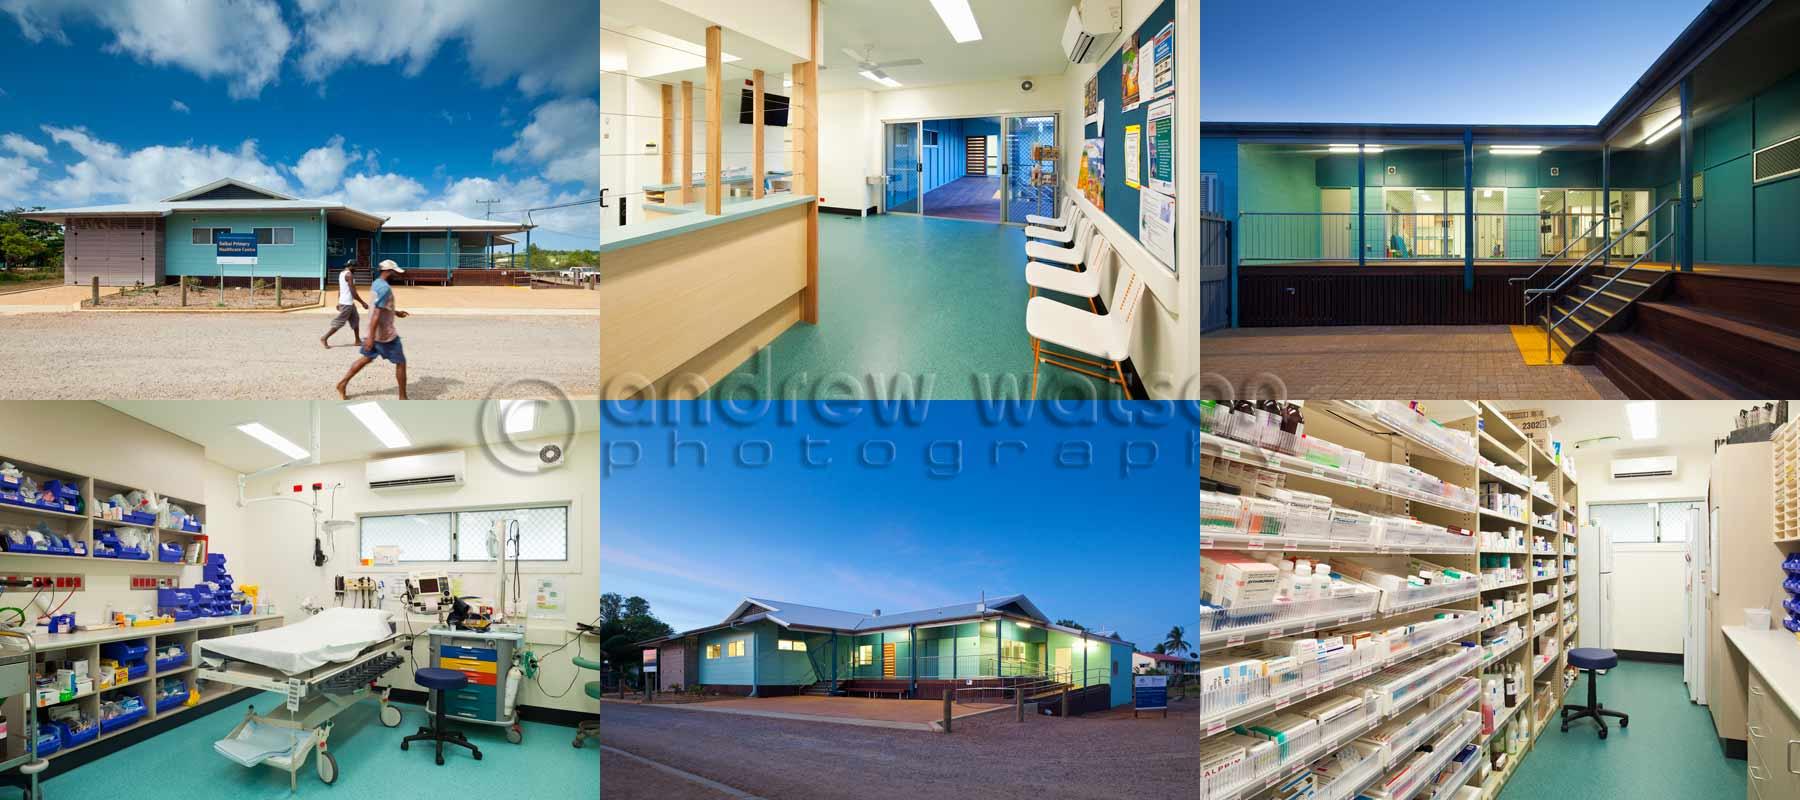 Architecture Photography - Saibai Island Primary Health Care Facility, Torres Strait